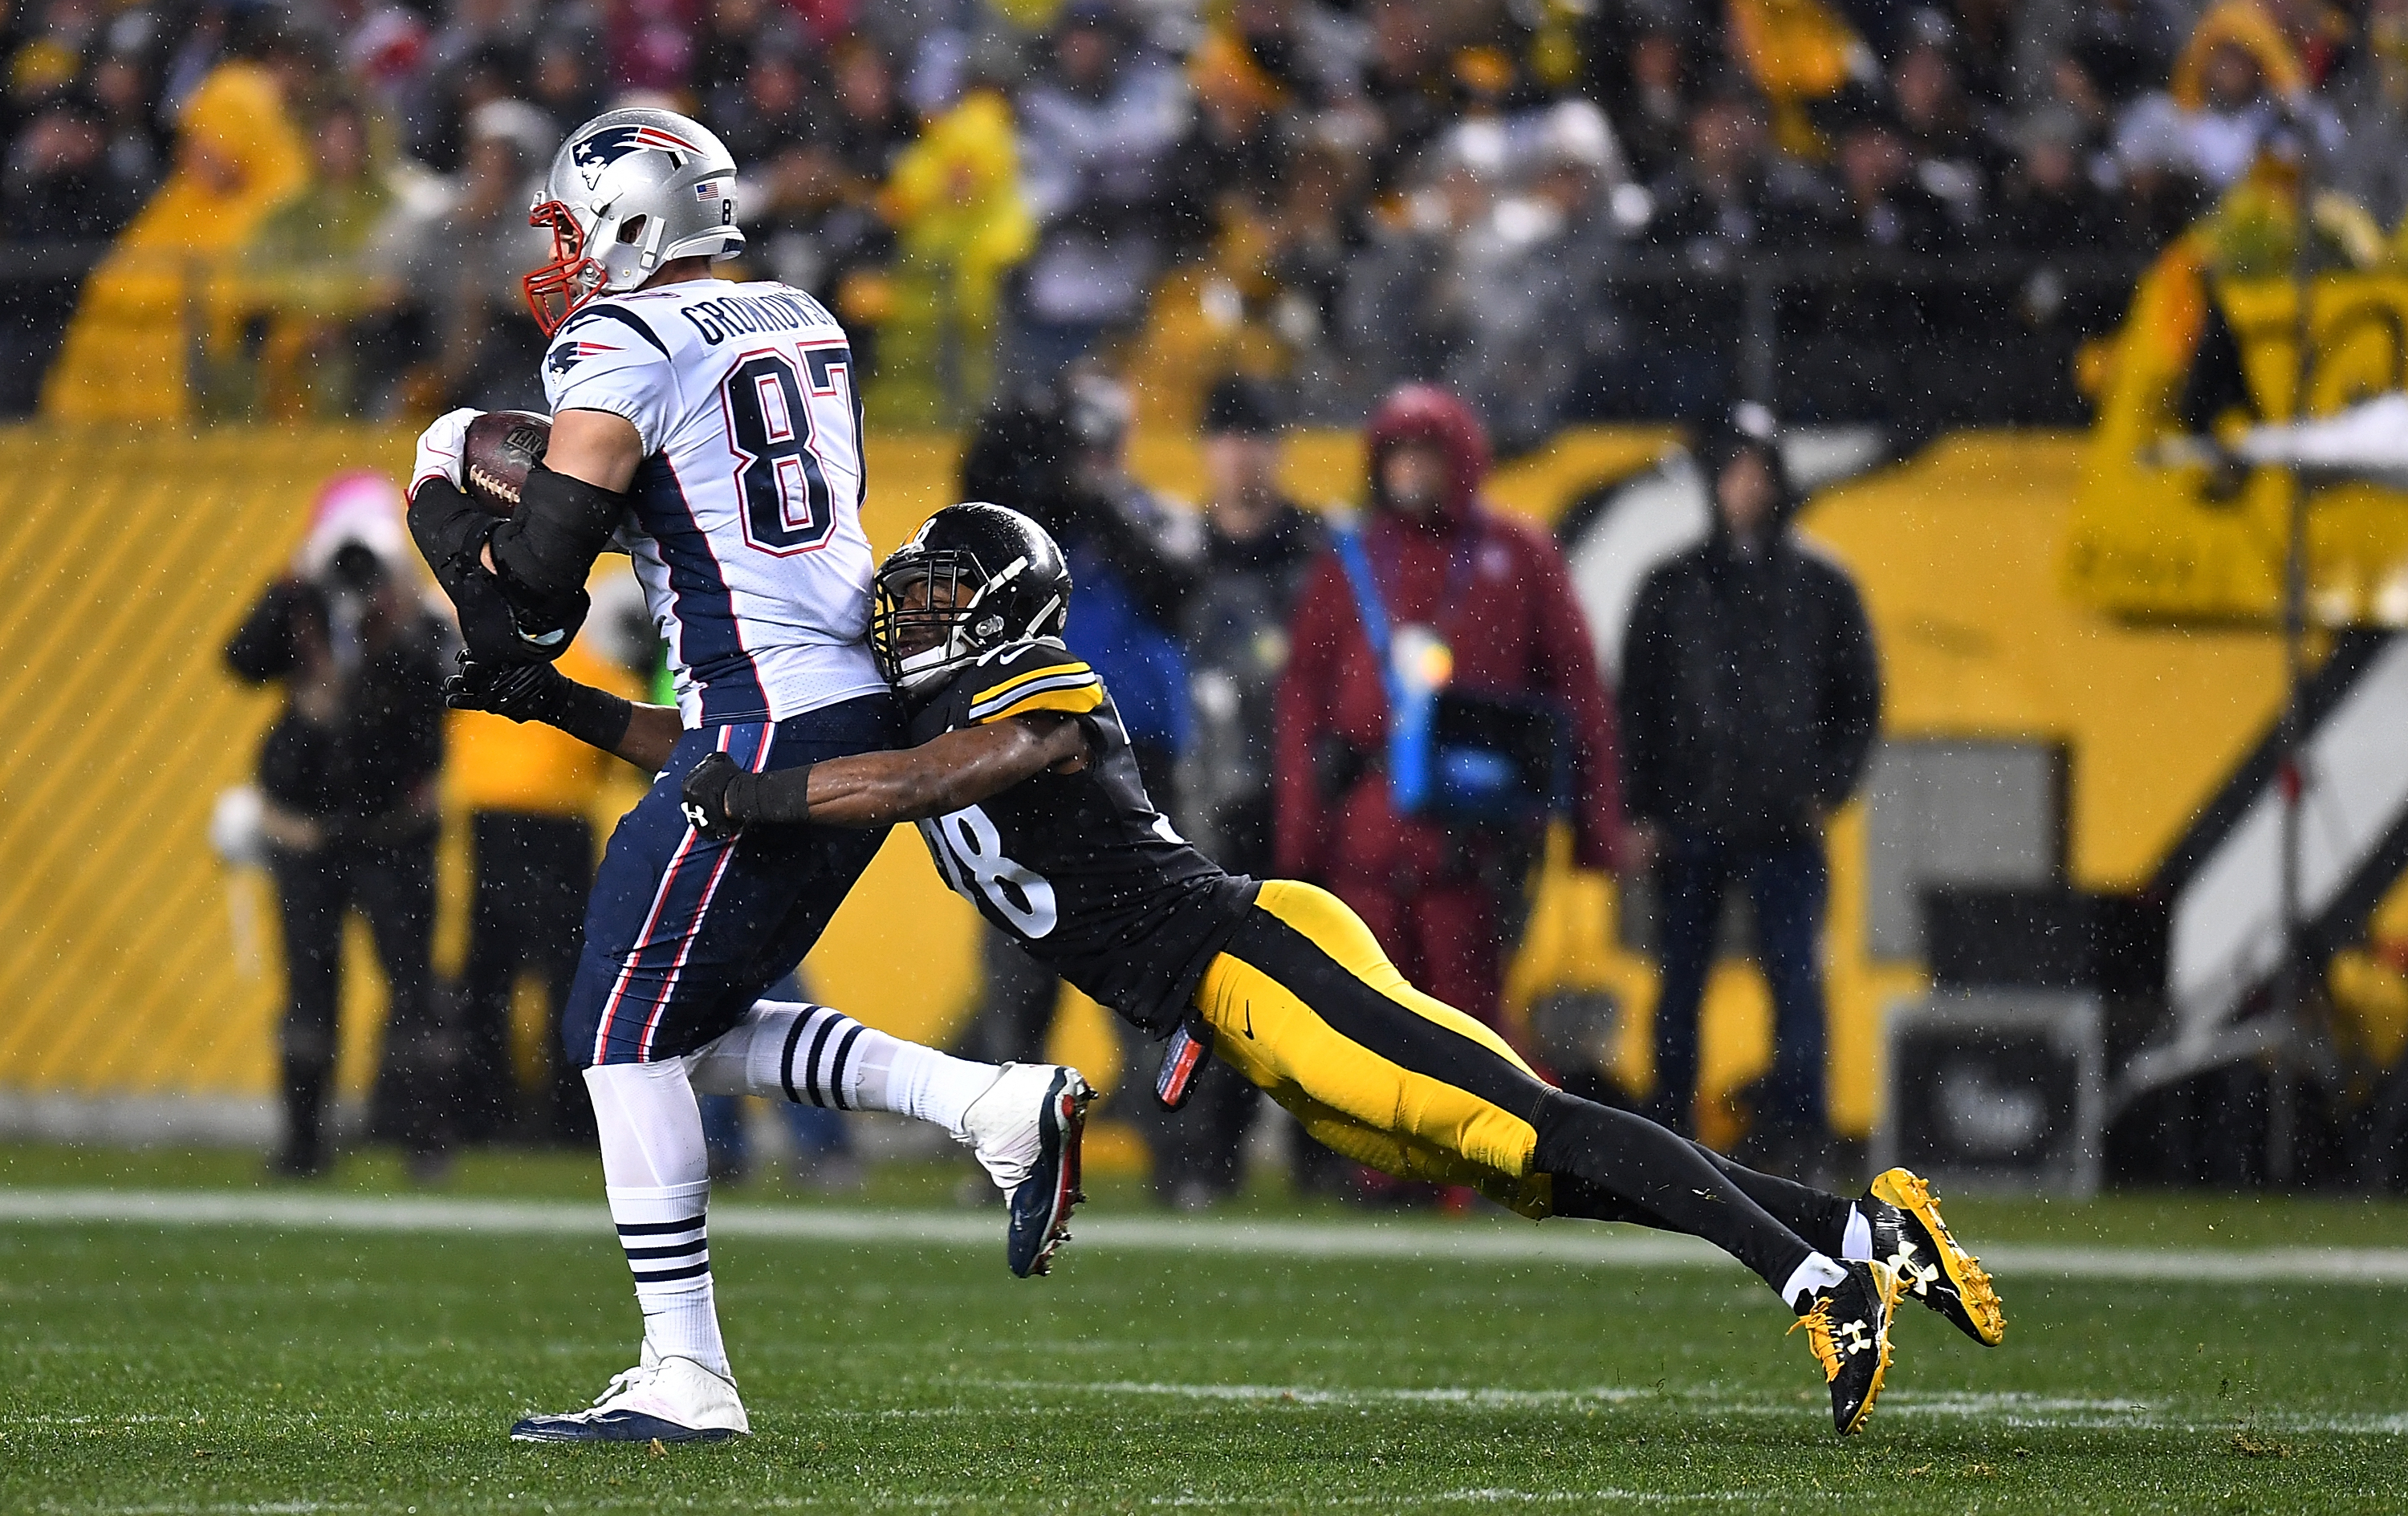 Patriots star Rob Gronkowski named AFC Offensive Player of Week